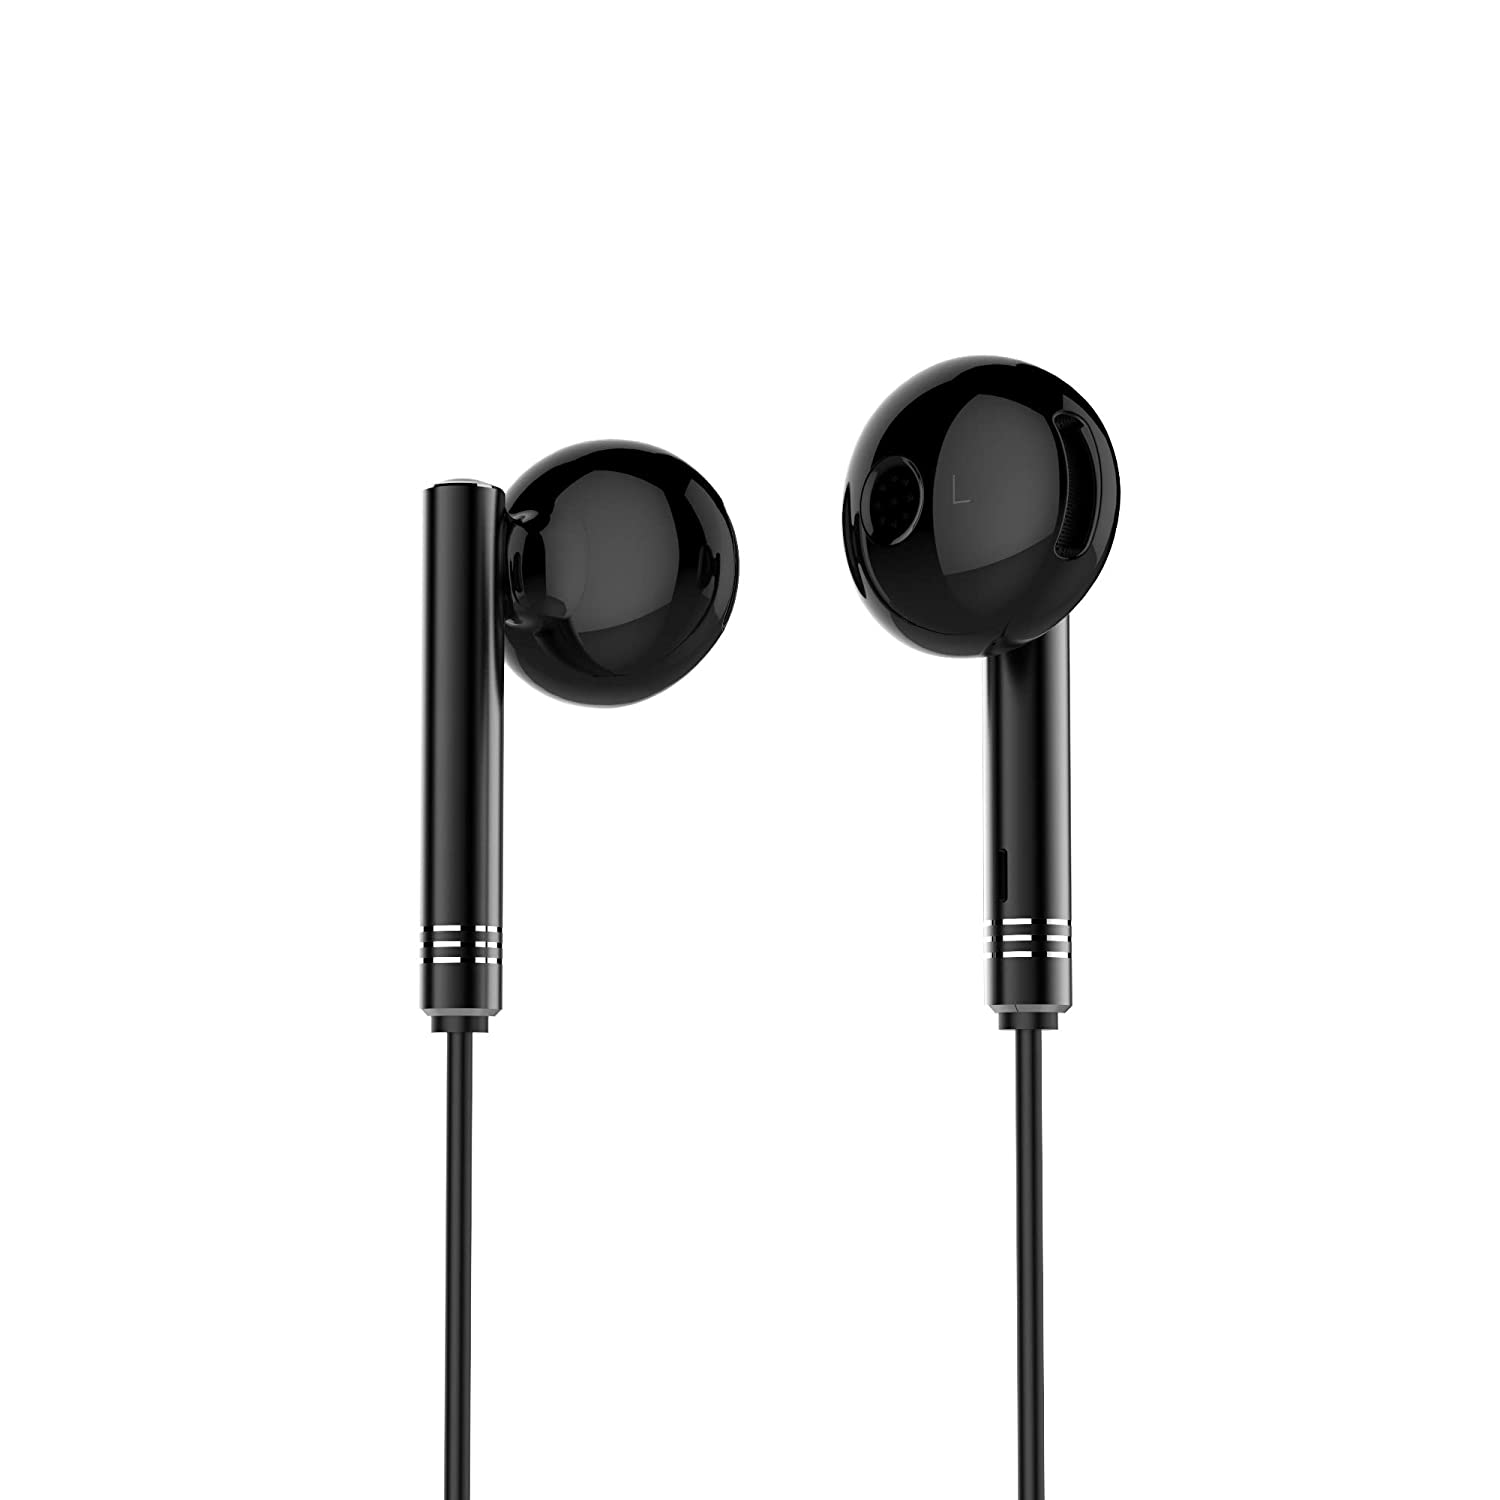 [Apply coupon] SNOKOR by Infinix Bass Drops Earphones (Black) with 14.3mm Large Bass Boost Driver, Trendy Design and Call/Music/Voice Assistant Control